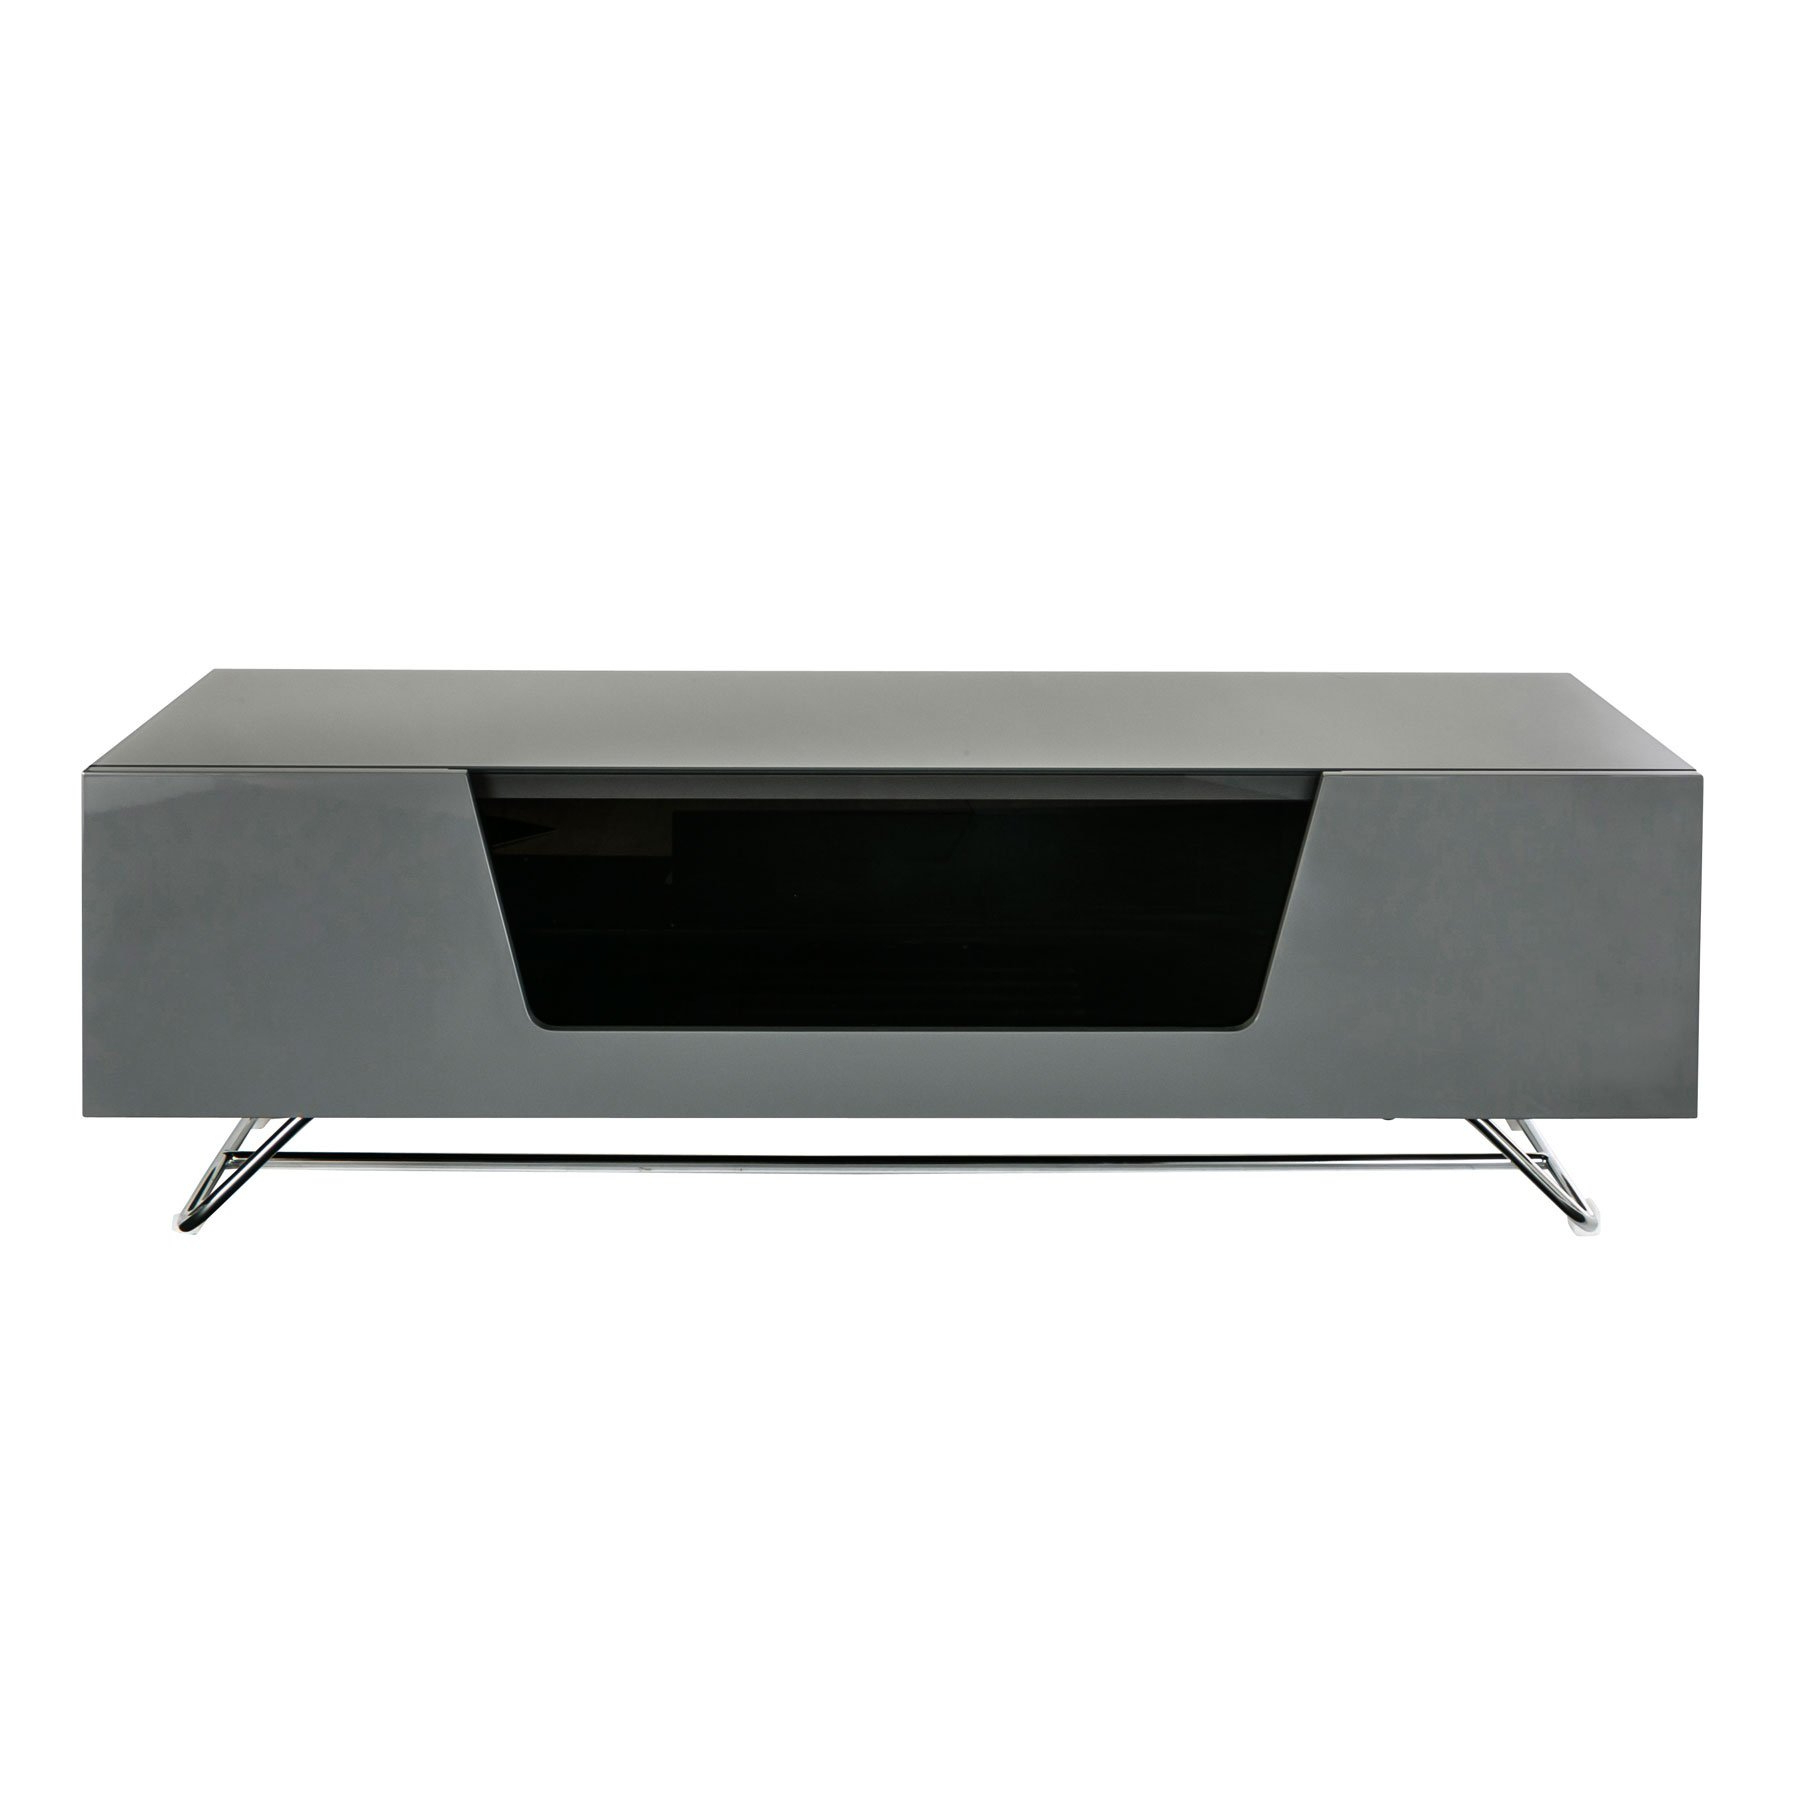 """Well Liked Alphason Chromium 2 120cm Grey Tv Stand For Up To 60"""" Tvs Pertaining To Chromium Tv Stands (View 1 of 25)"""